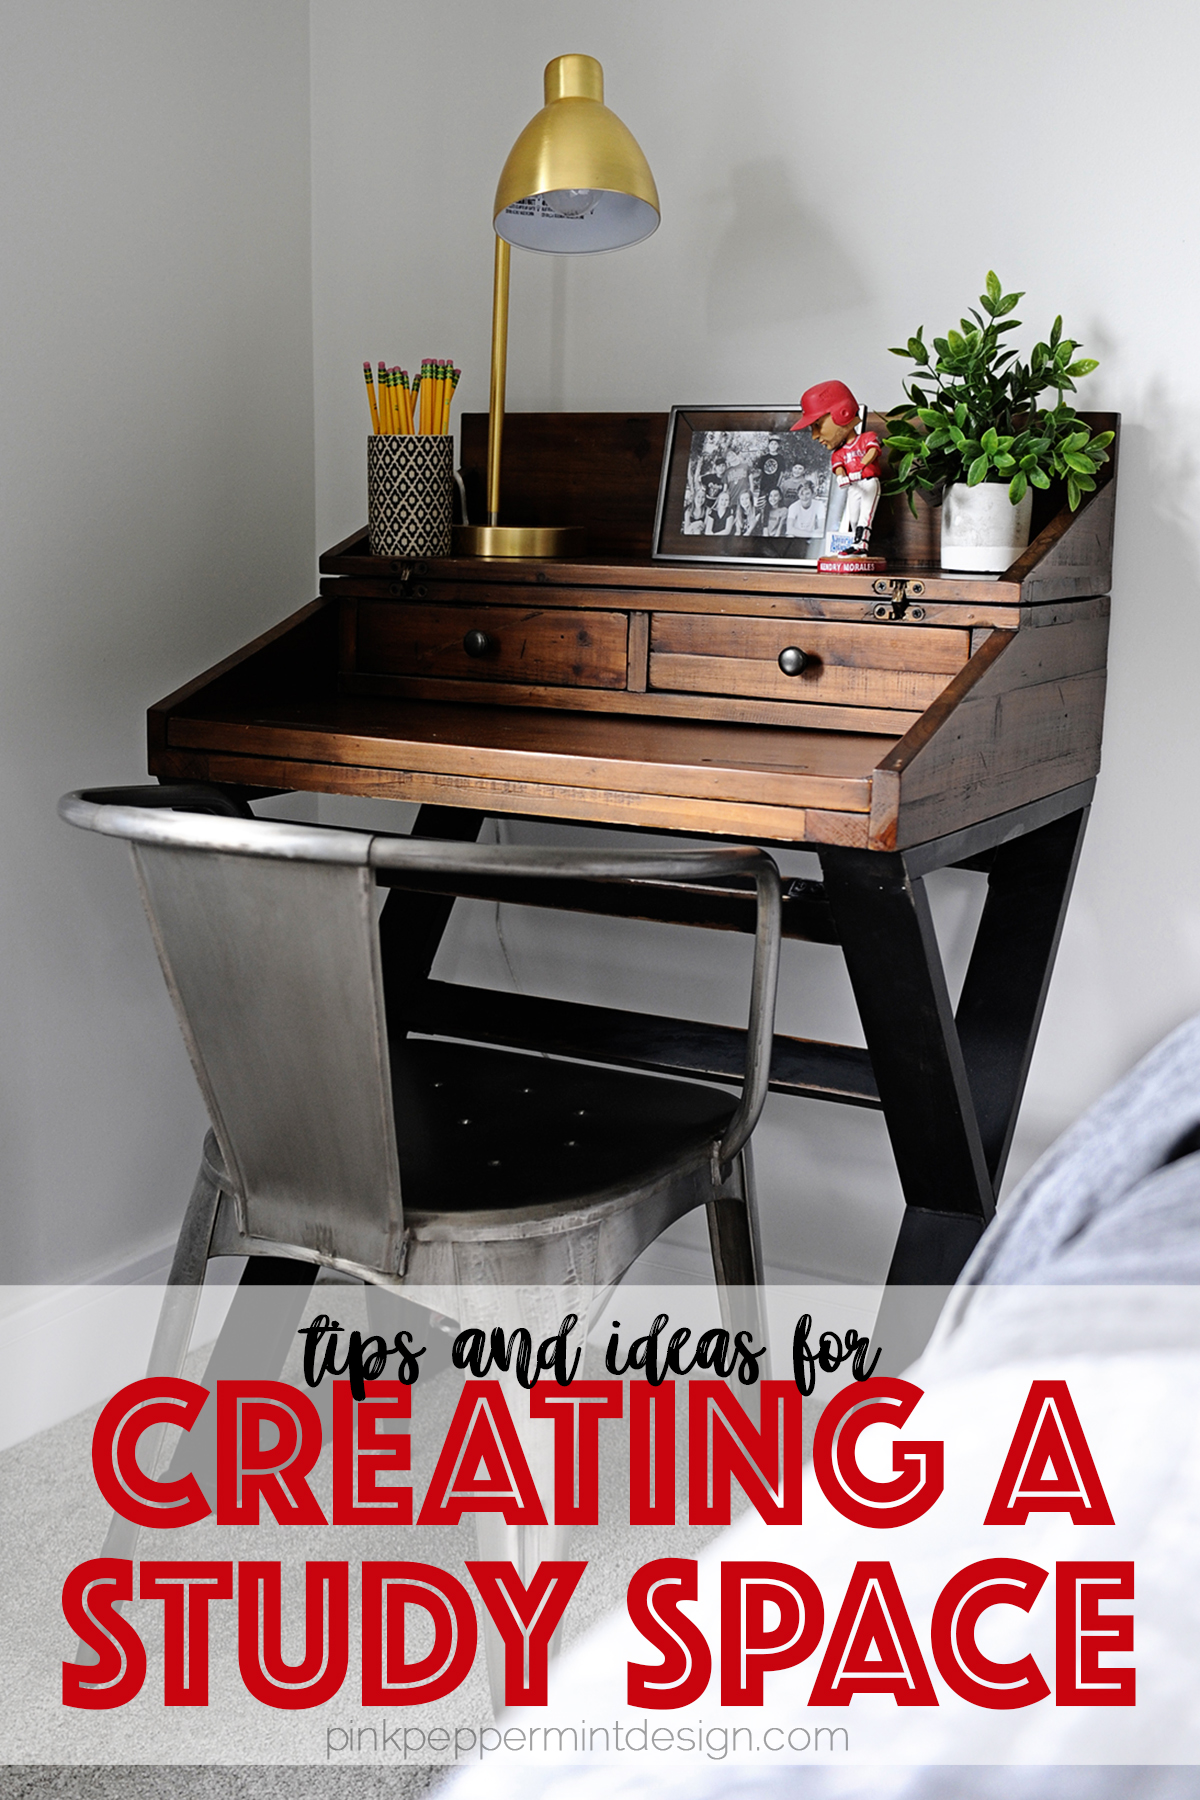 Study Space Ideas & Tips for Creating a Great Homework Spot